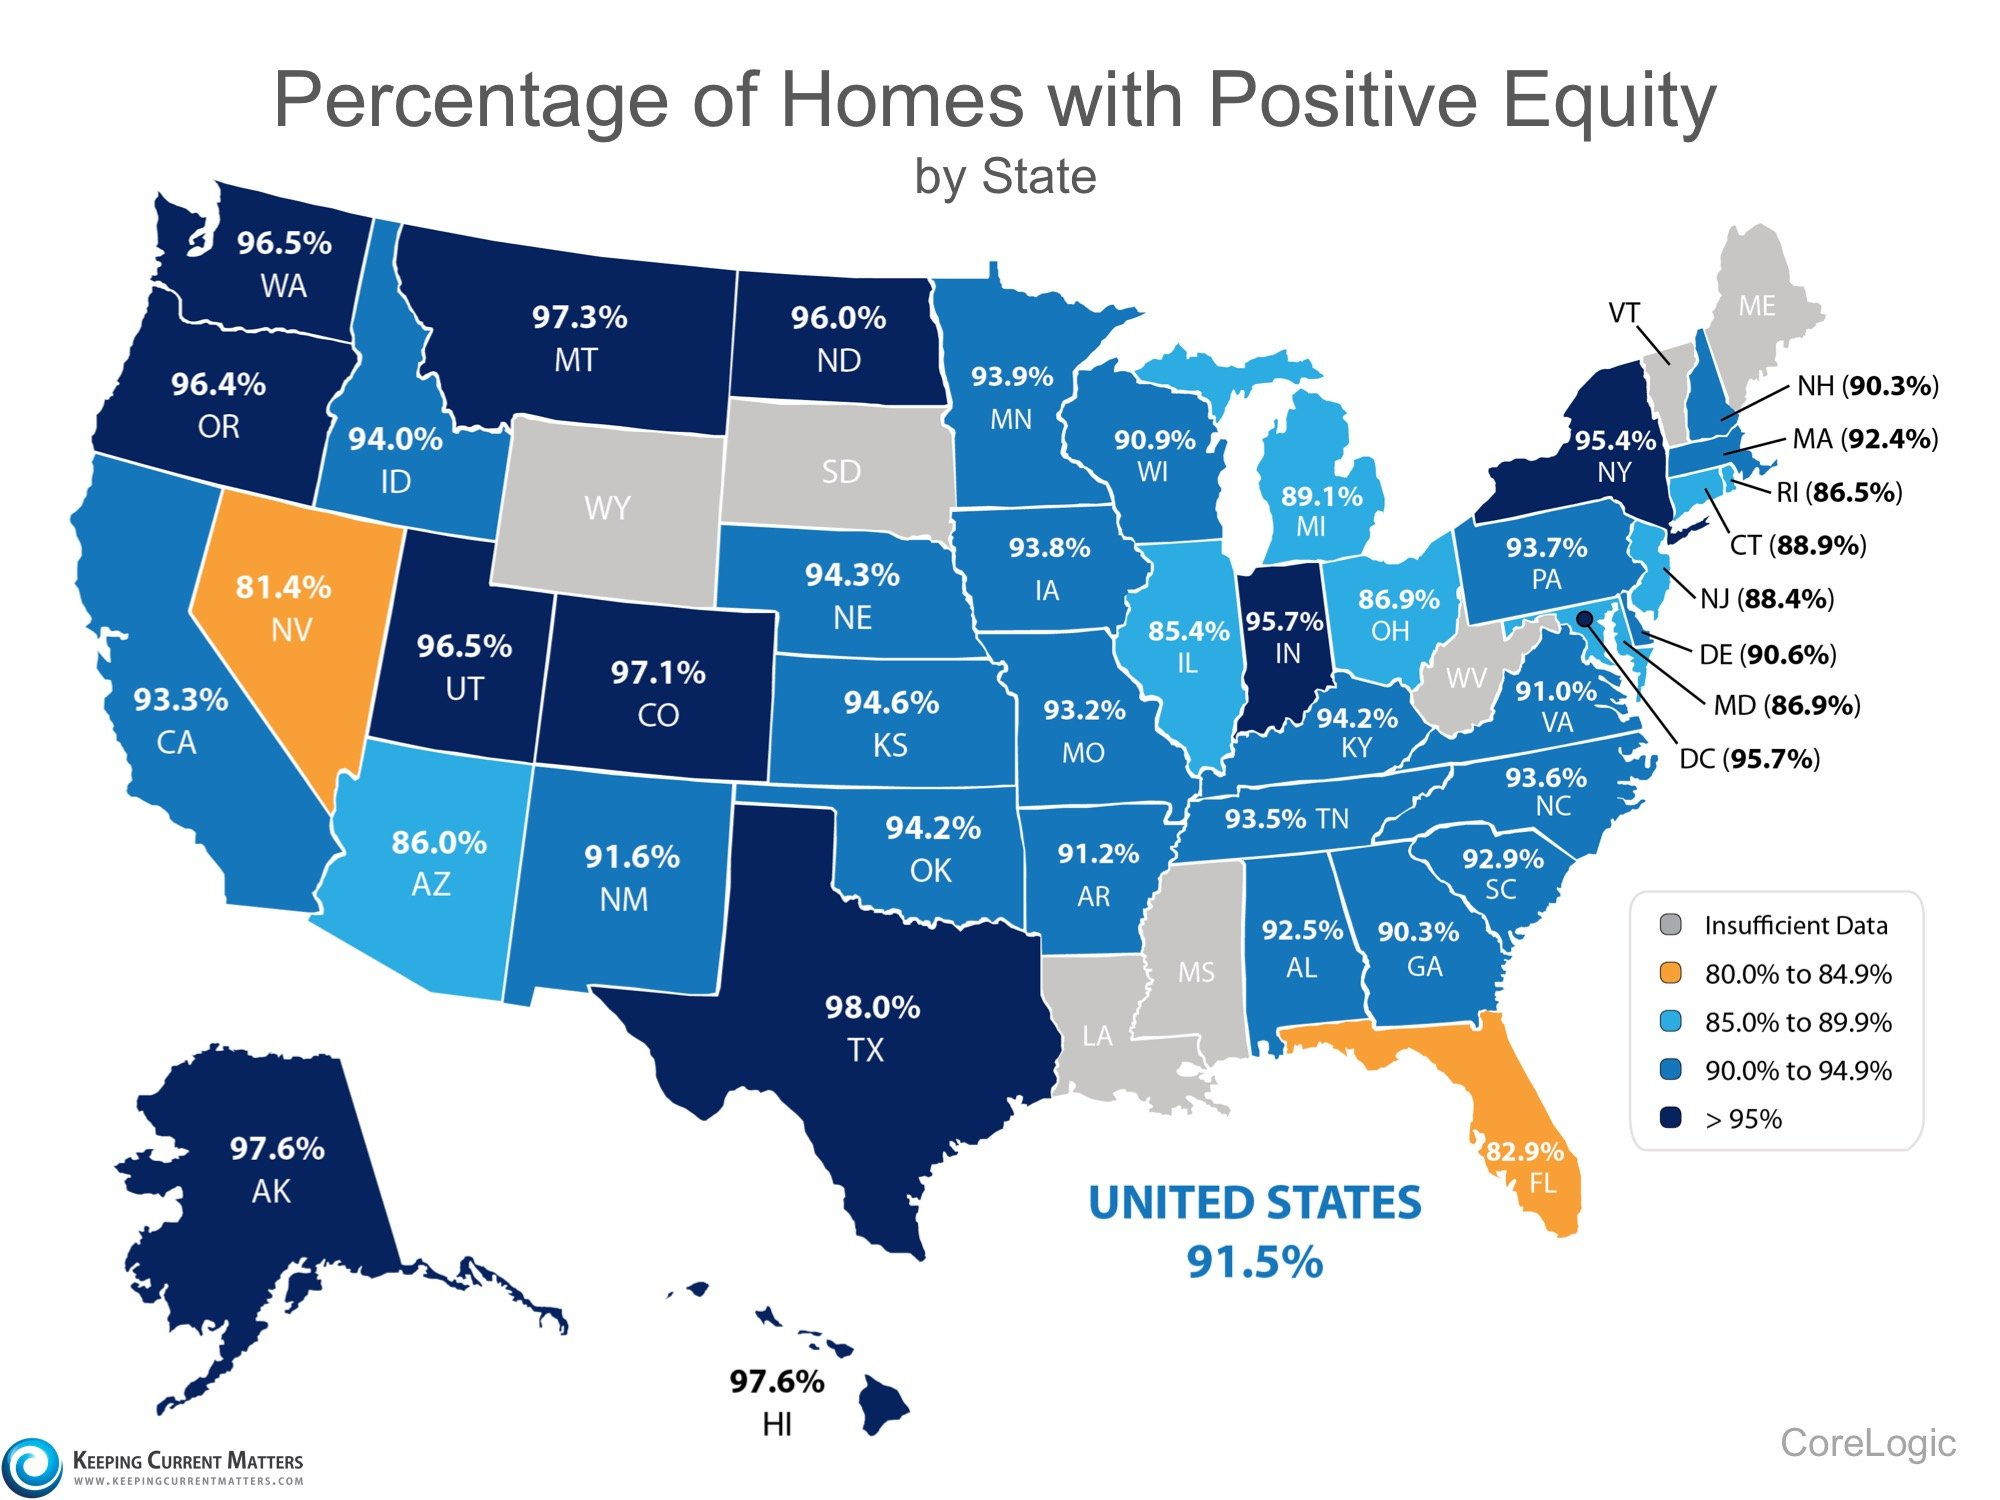 91.5% of Homes in the US have Positive Equity | Keeping Current Matters